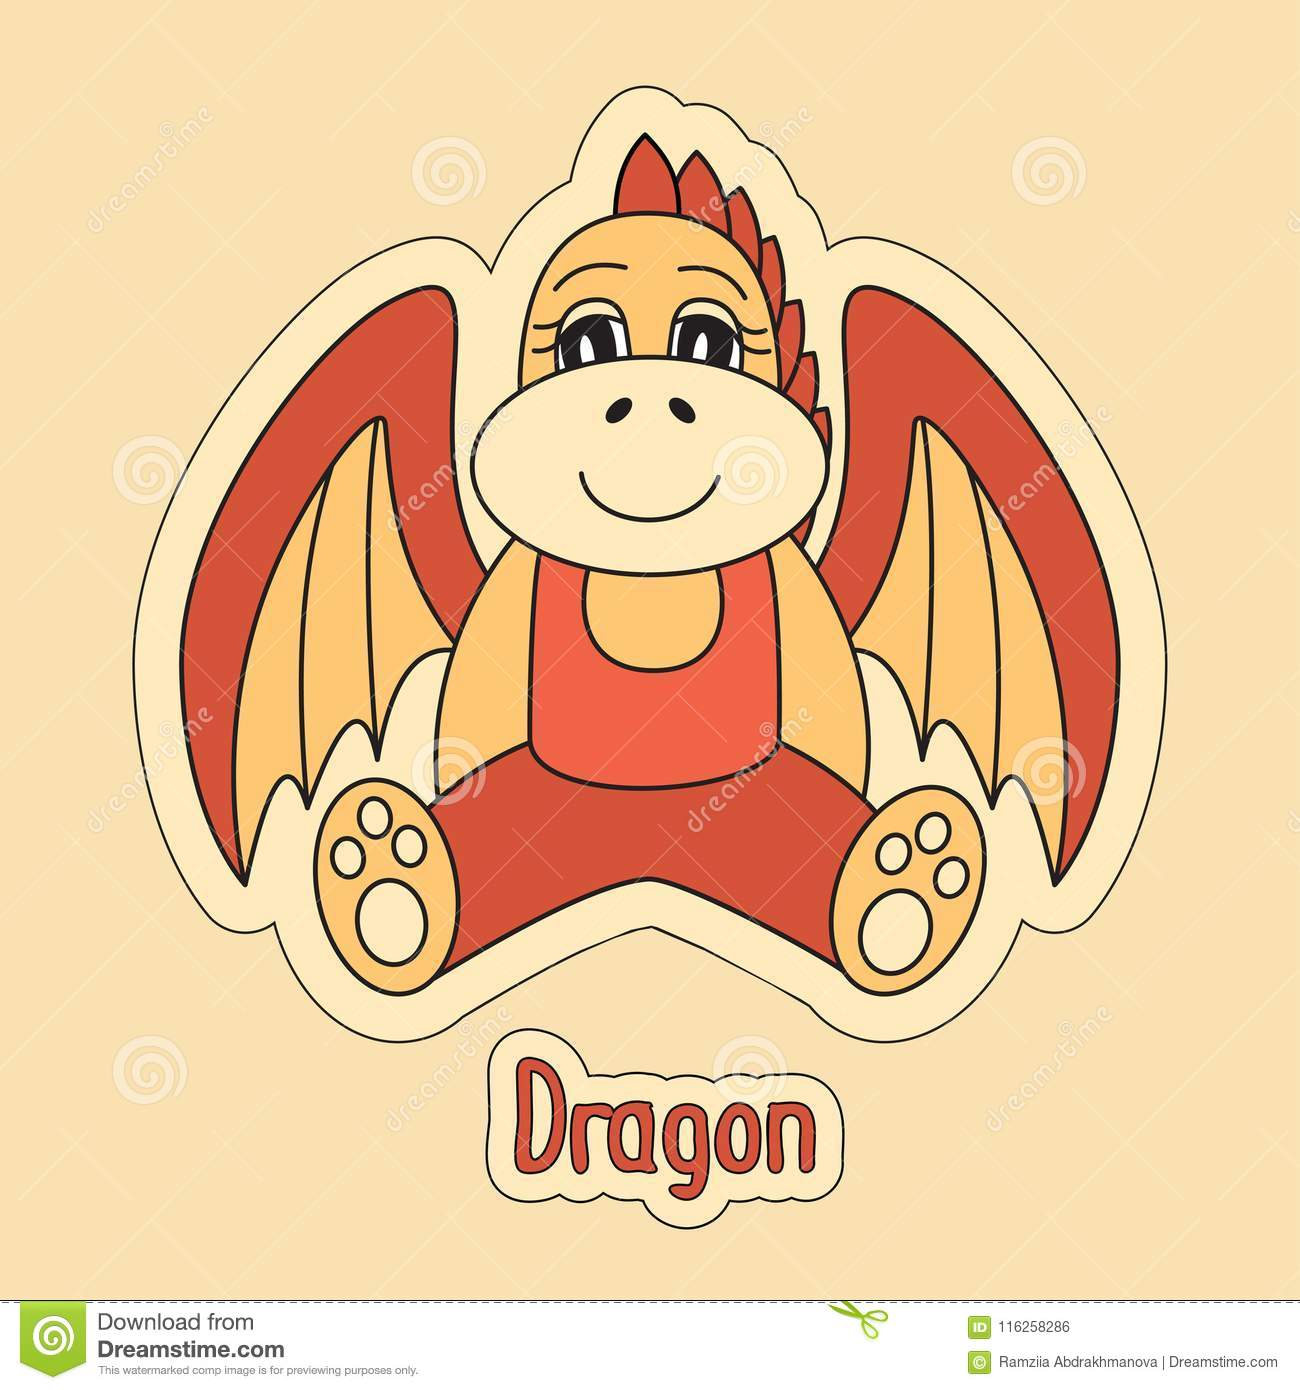 Avatar 4 2024: Dragon, Cartoon Symbol Of The Chinese Horoscope 2024 Year